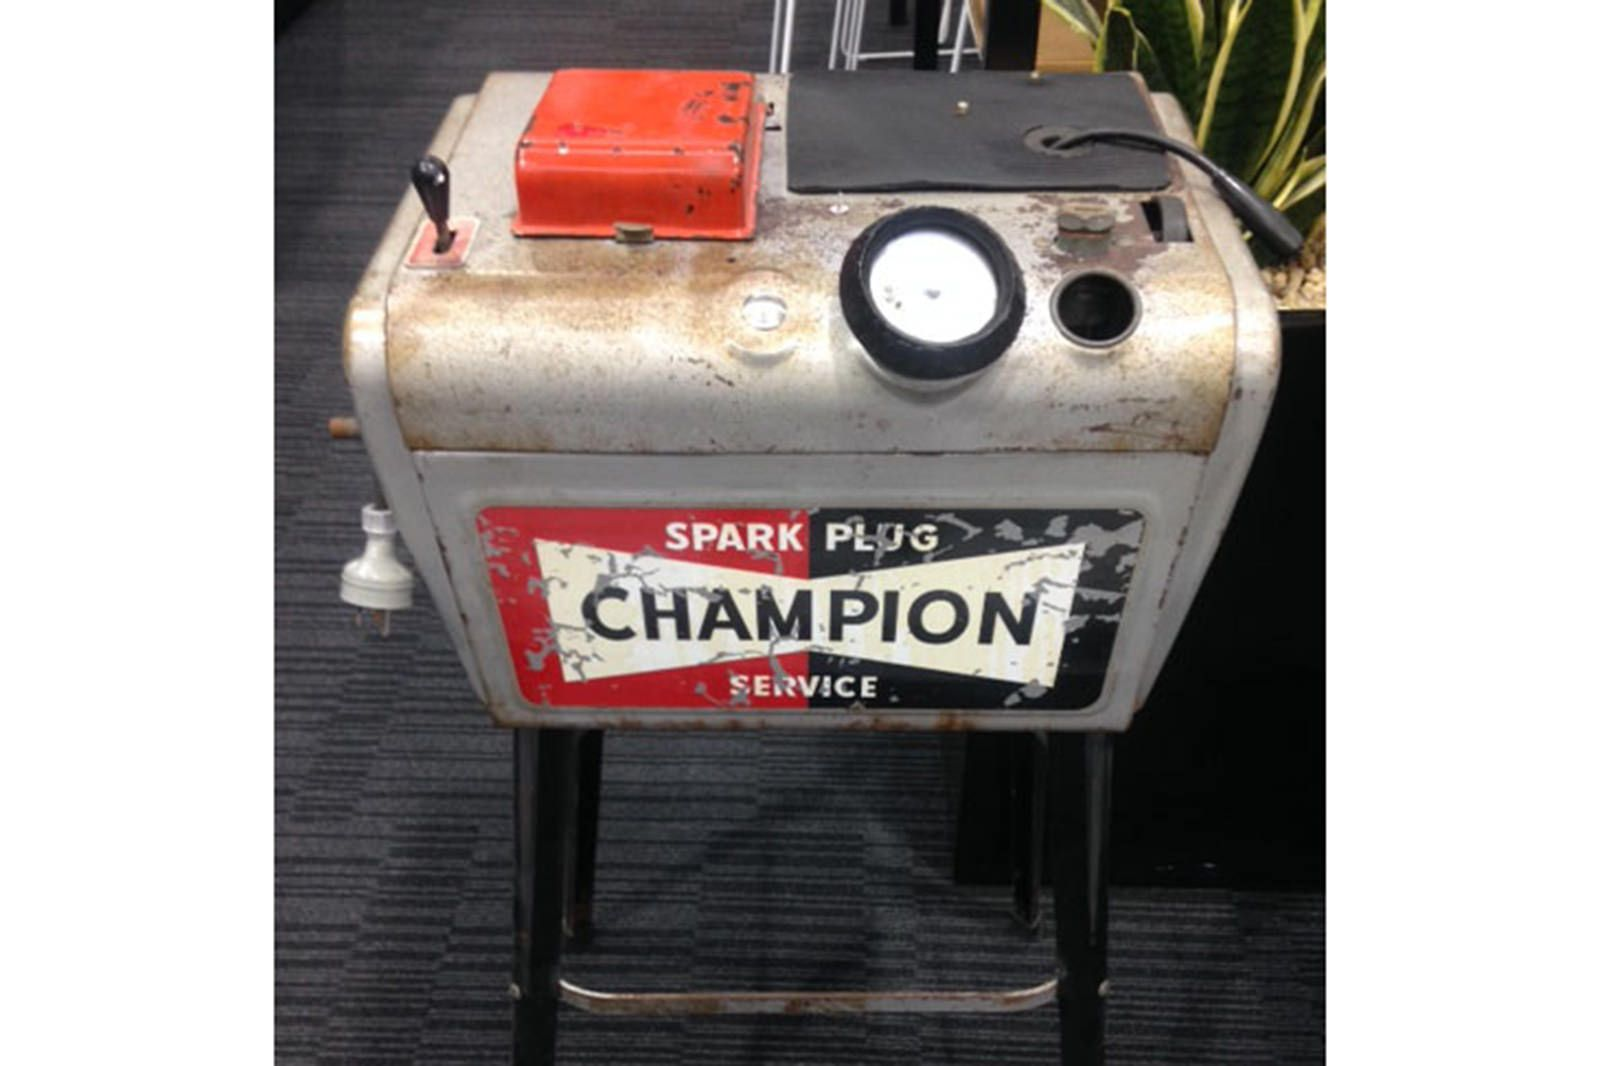 hight resolution of champion spark plug cleaner original condition and working